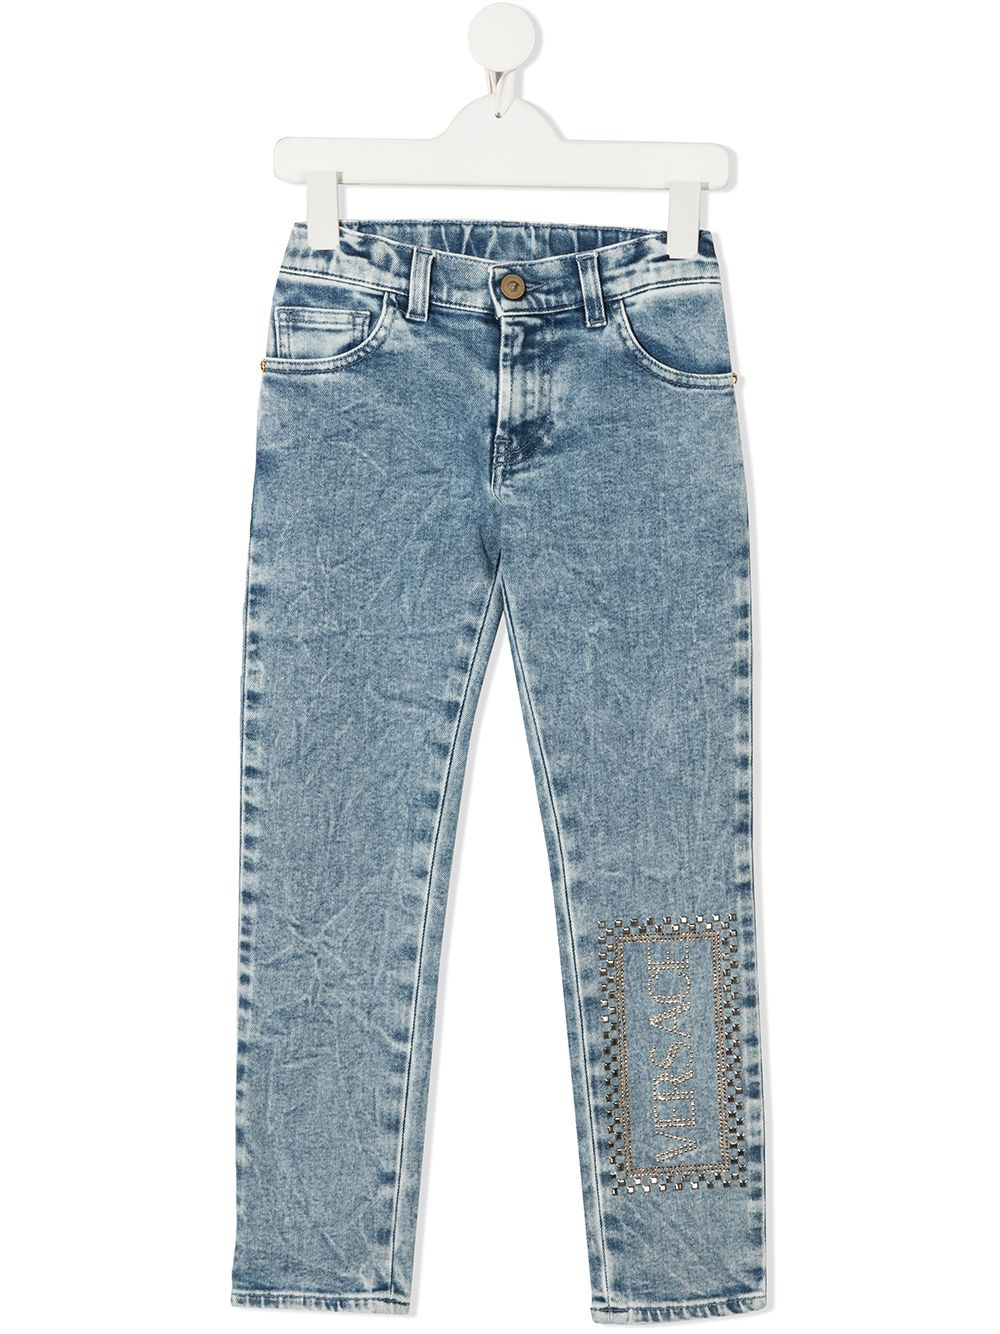 VERSACE KIDS Rhinestone Logo Denim Jeans Blue - Maison De Fashion